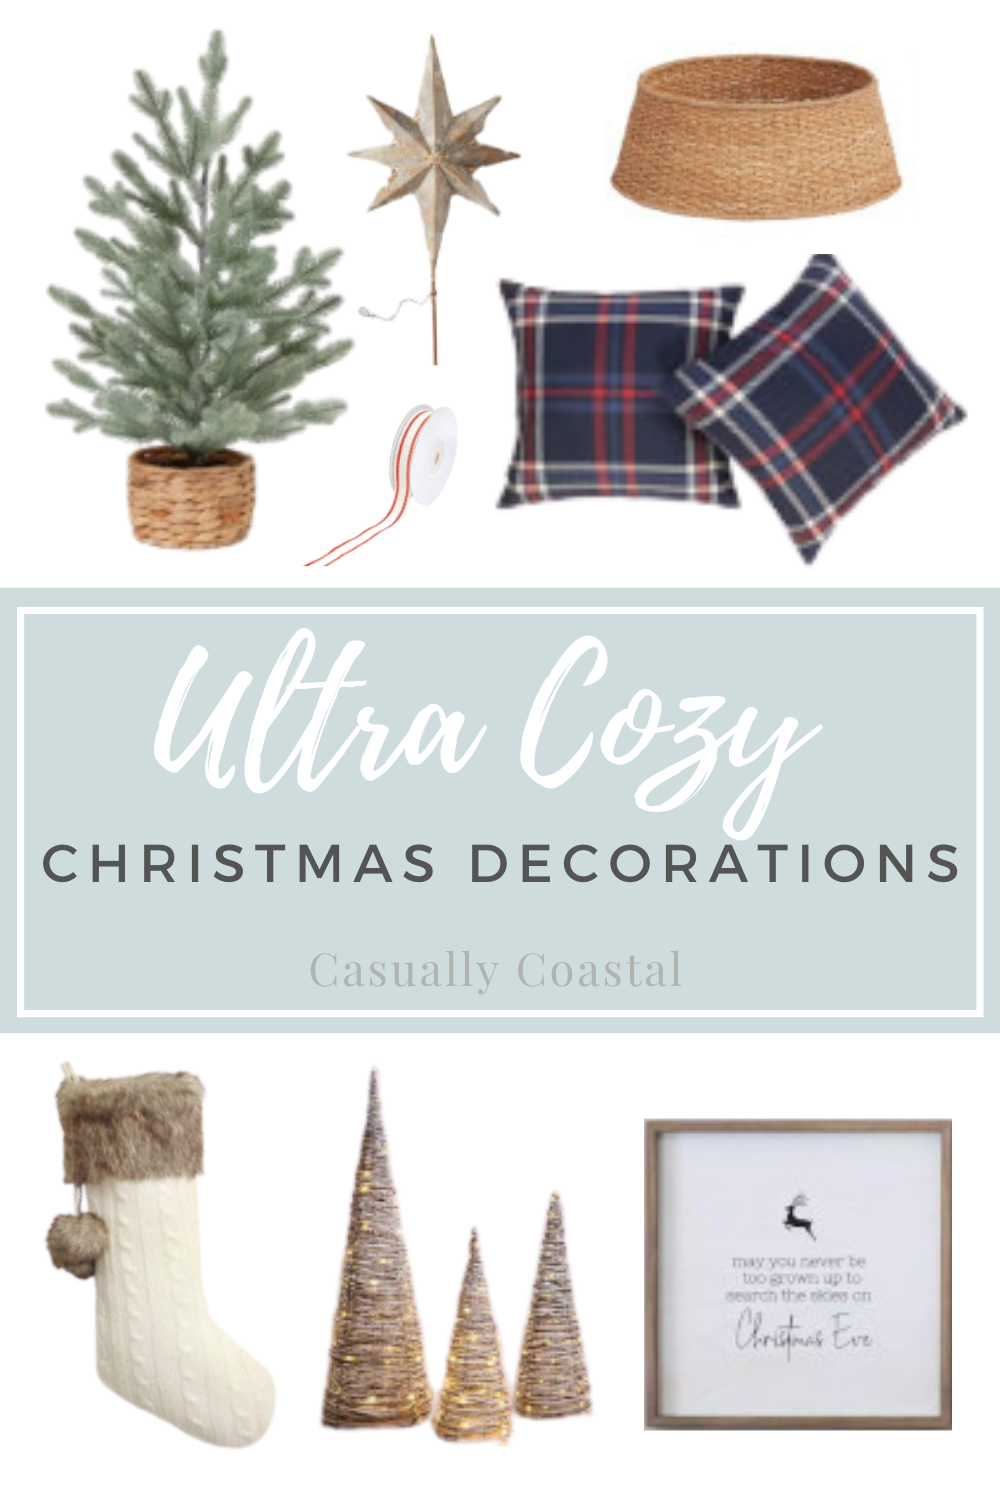 Wondering What to Buy for Christmas Decorations? Here's My Four Must-Haves!